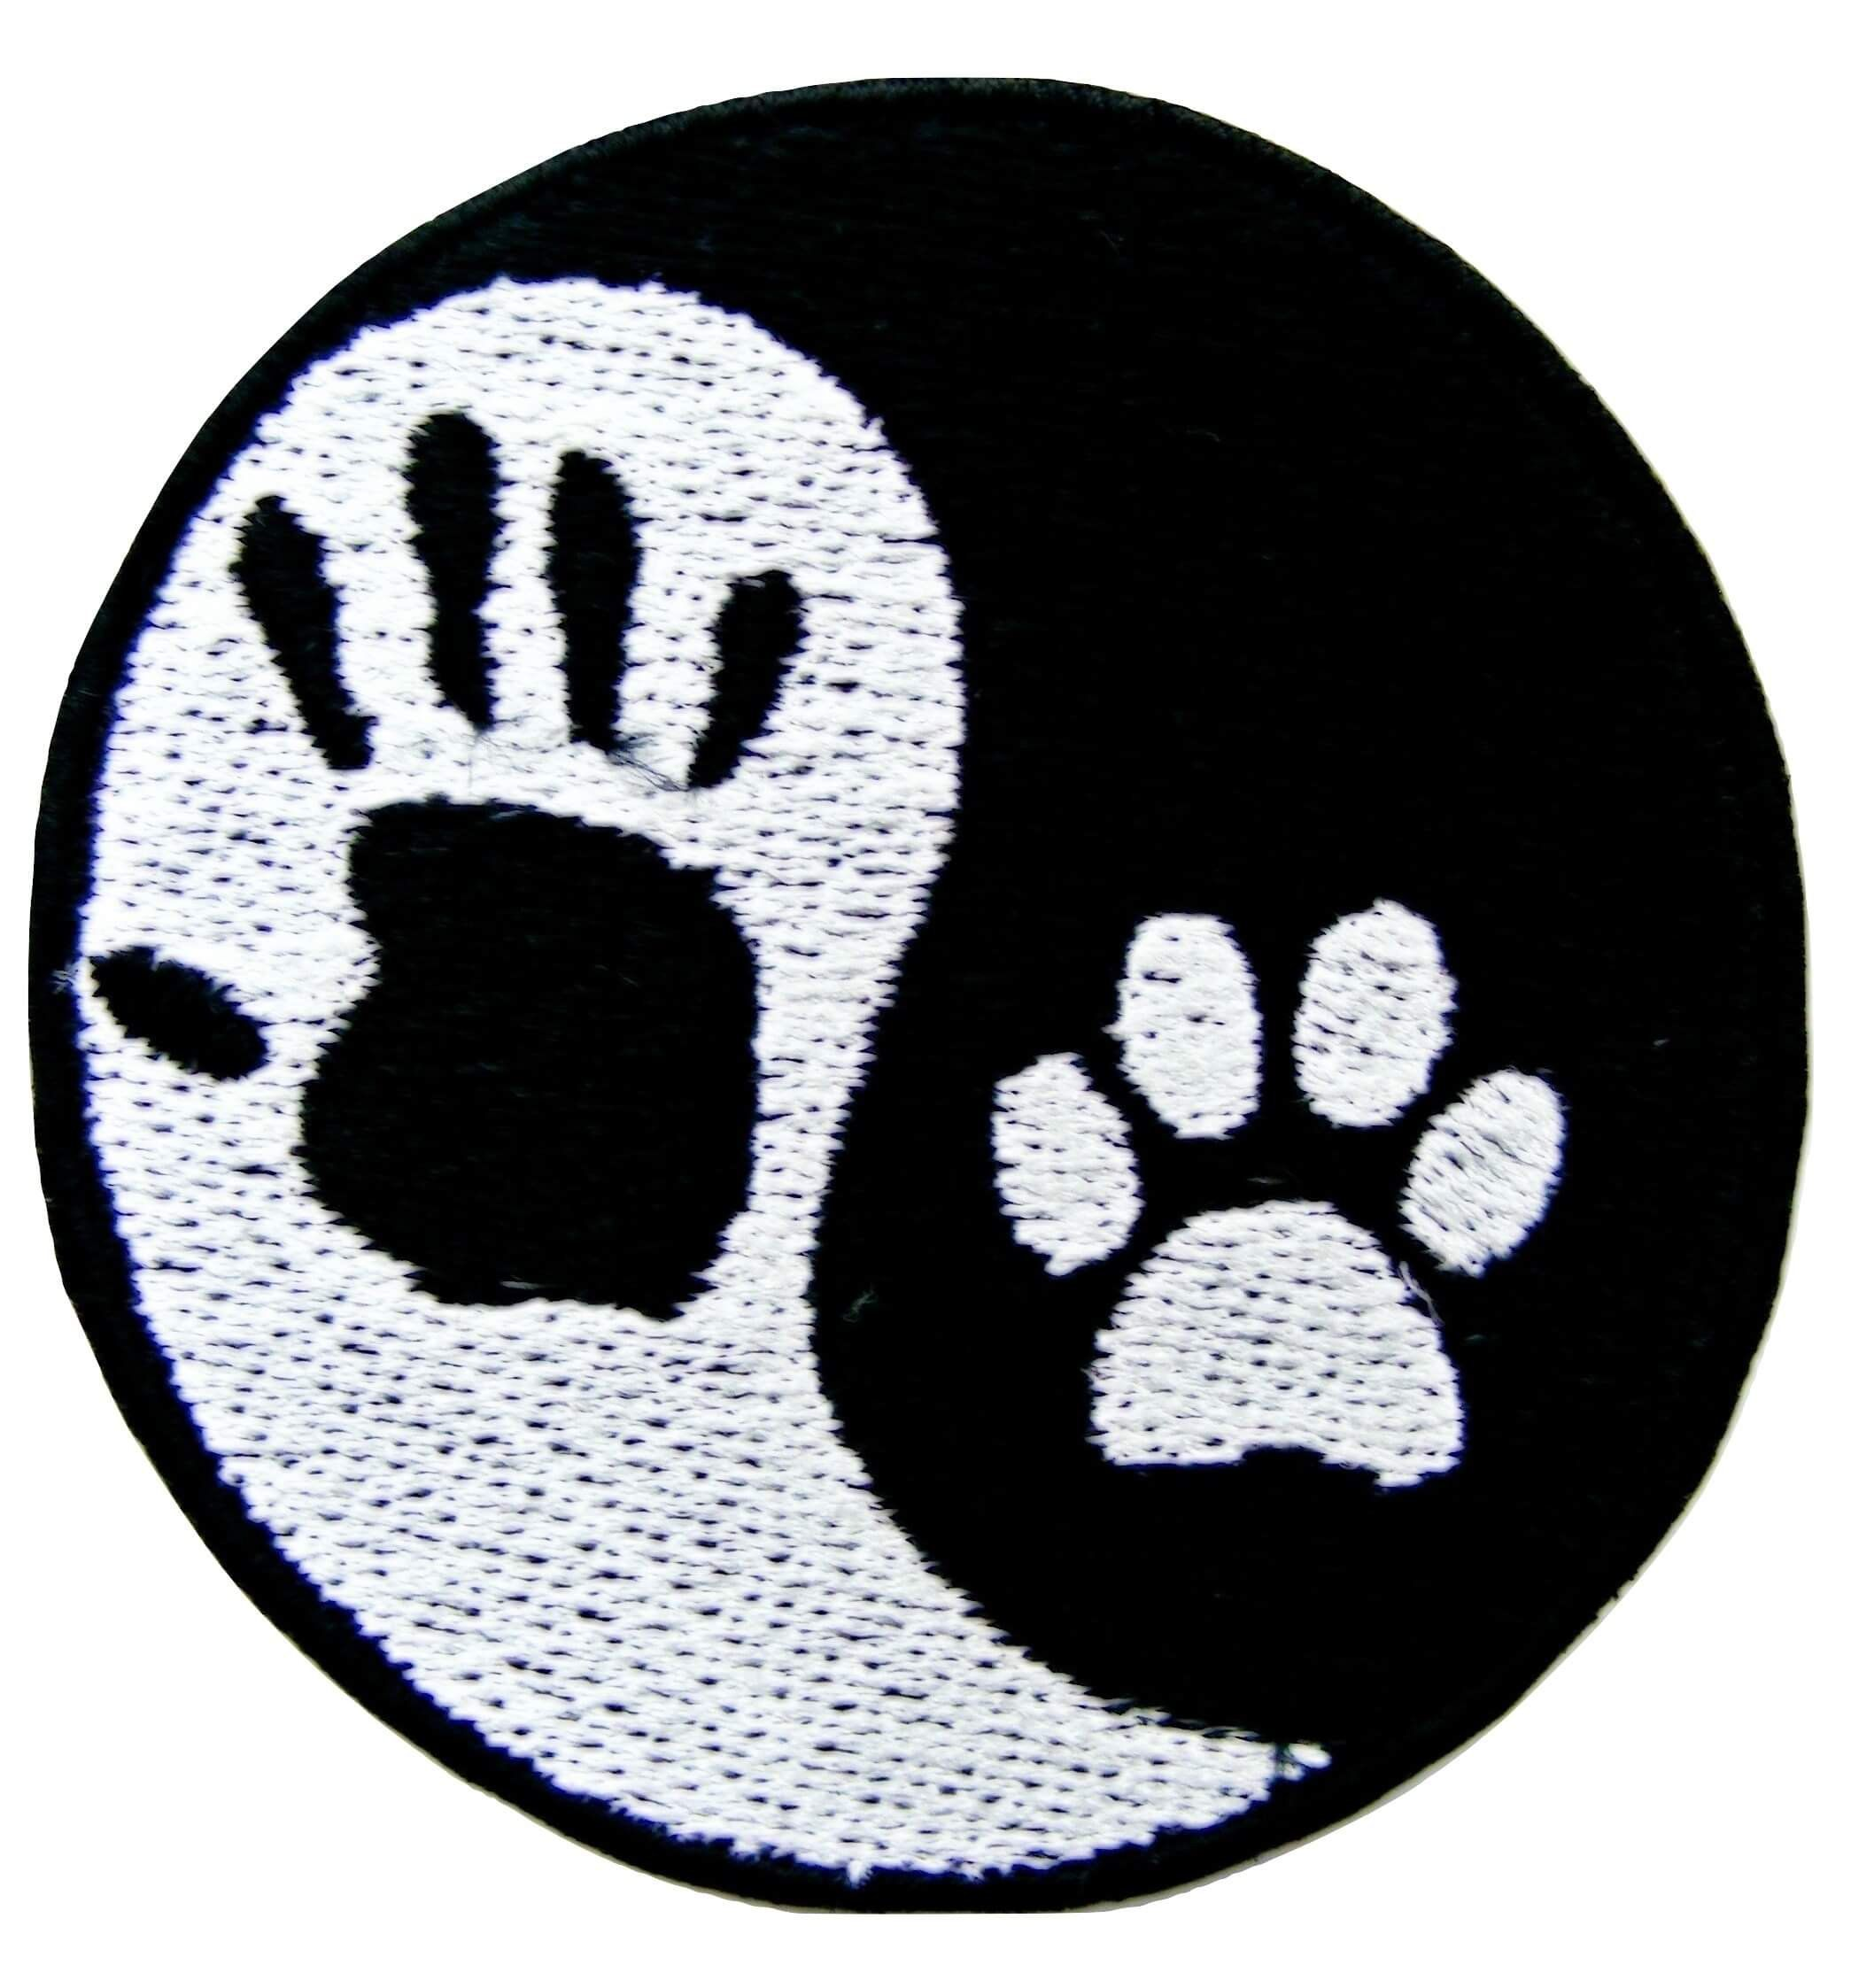 Premium Quality Lot of 4 Purple White Dog Animal Paw Print Embroidery Patch